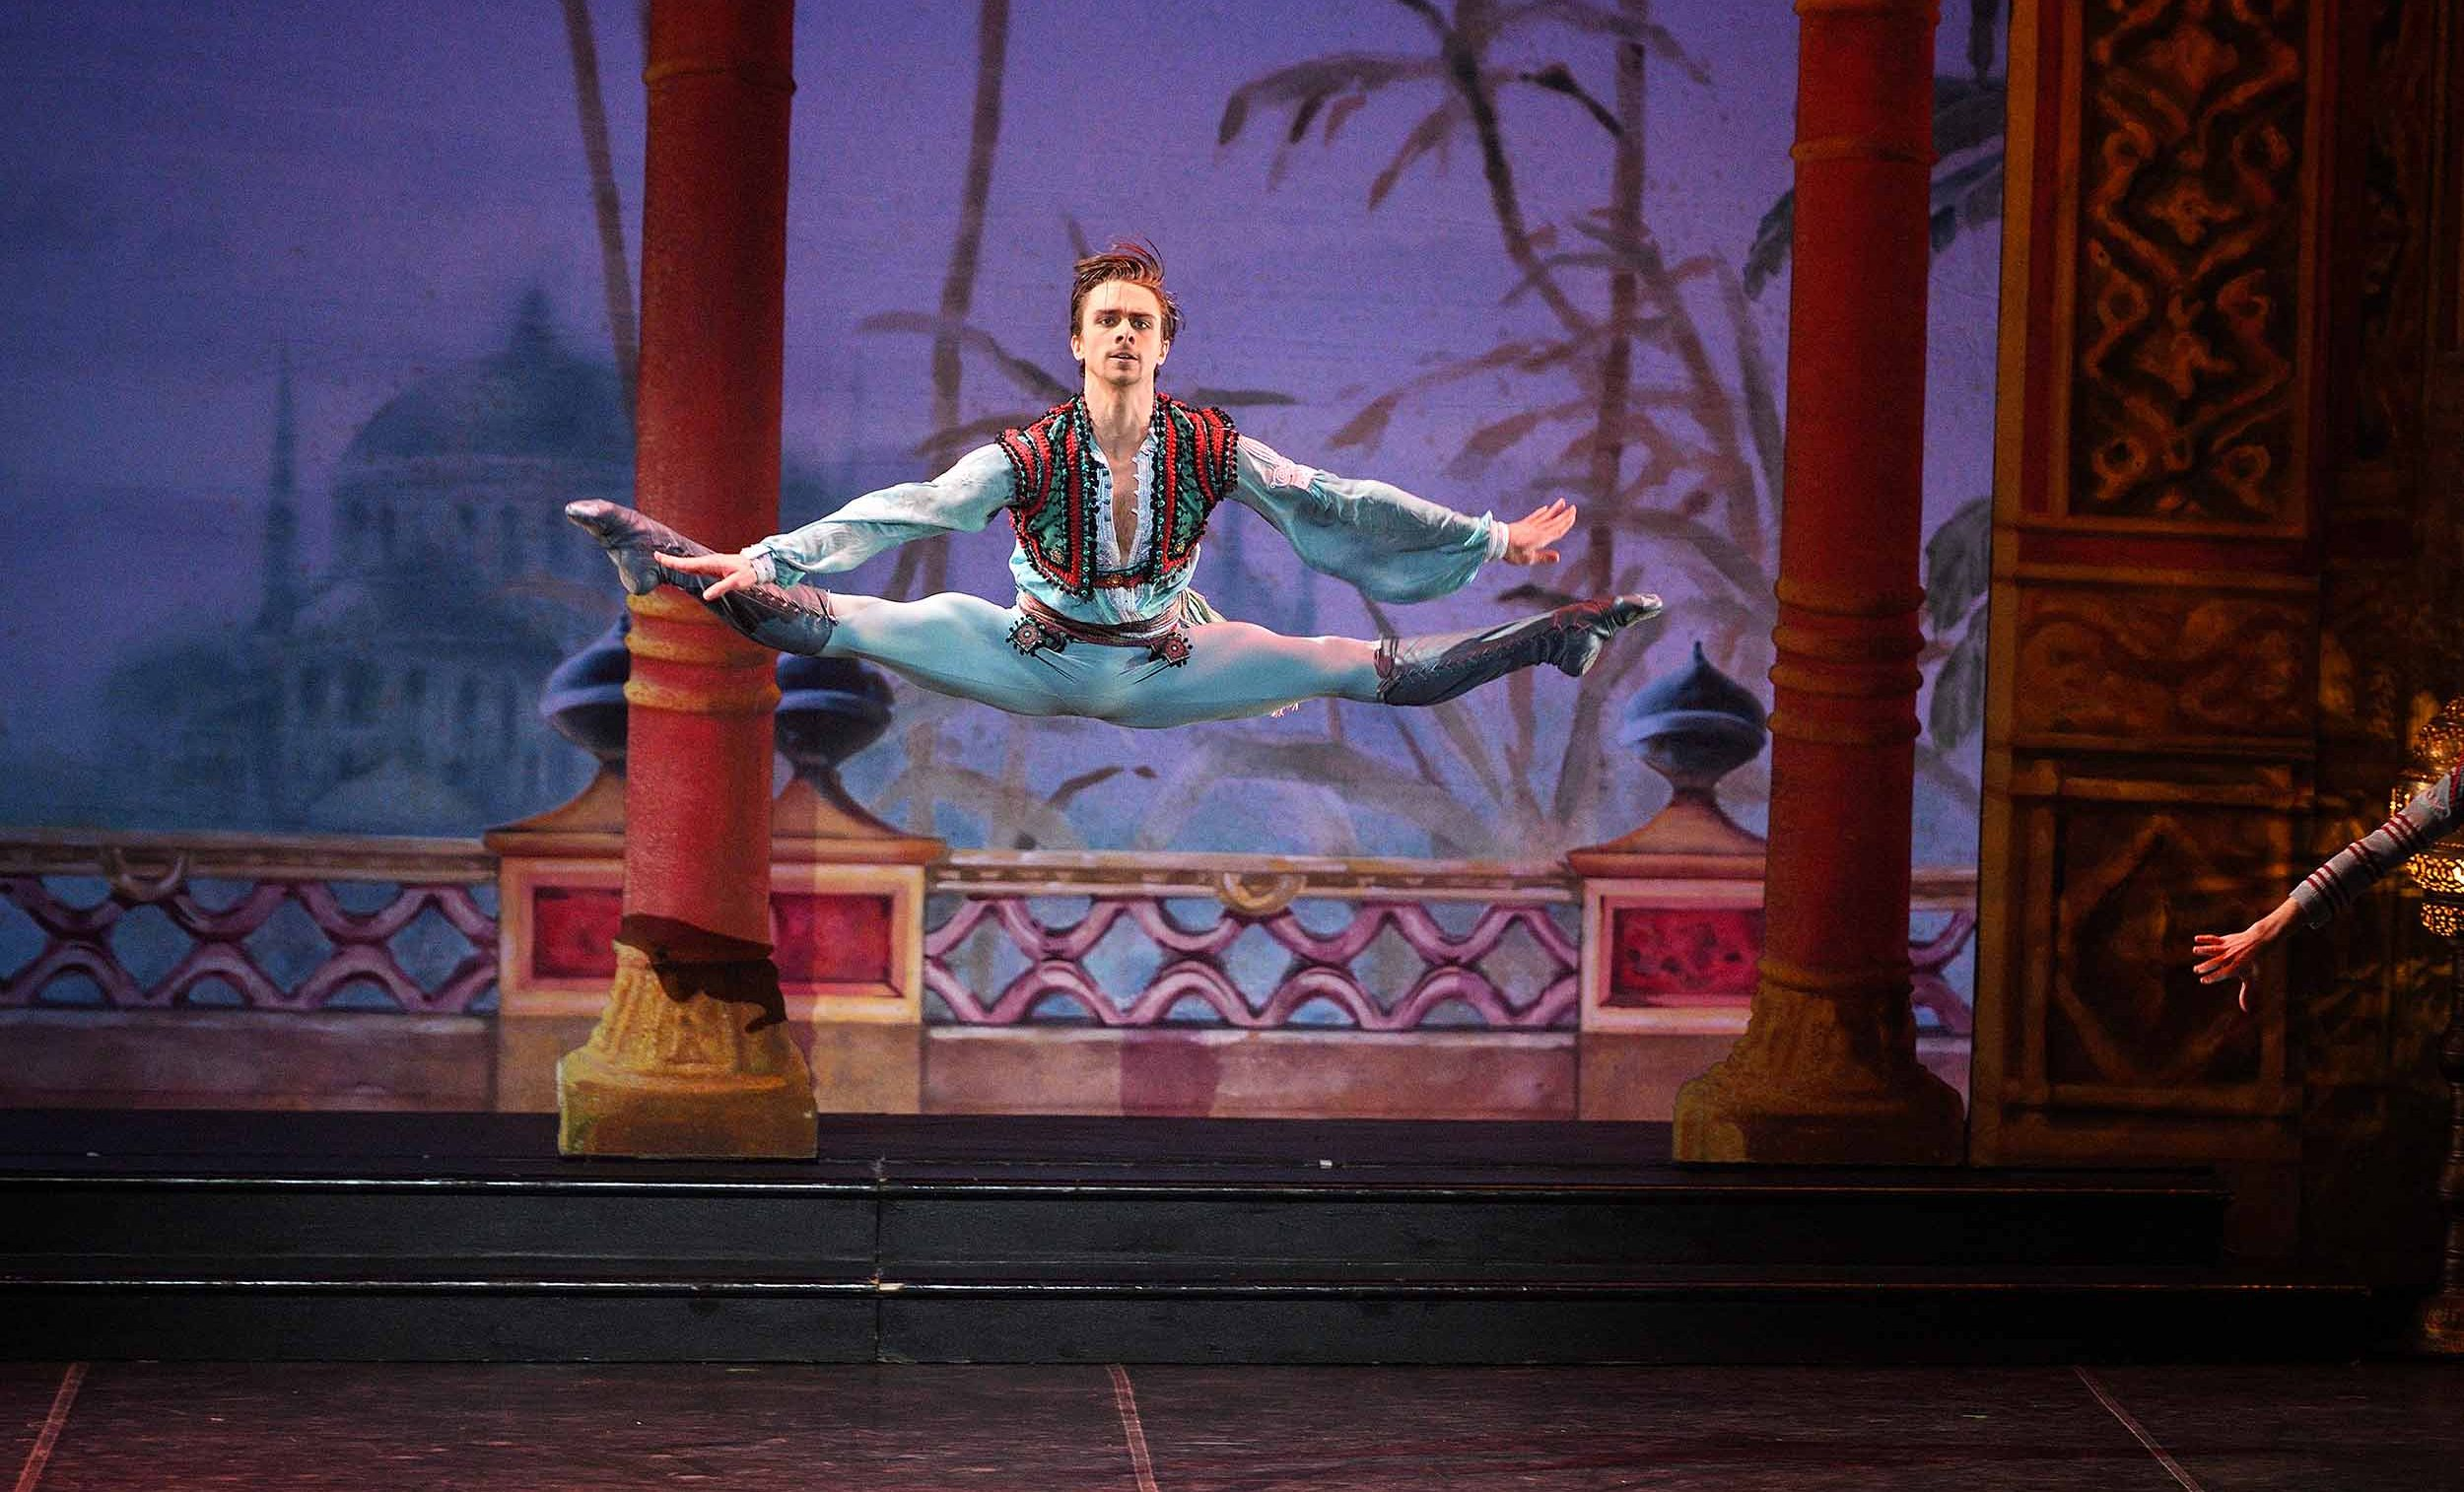 Francesco-Gabriele-Frola-as-Conrad-in-English-National-Ballet's-Le-Corsaire-(c)-Laurent-Liotardo-(3)